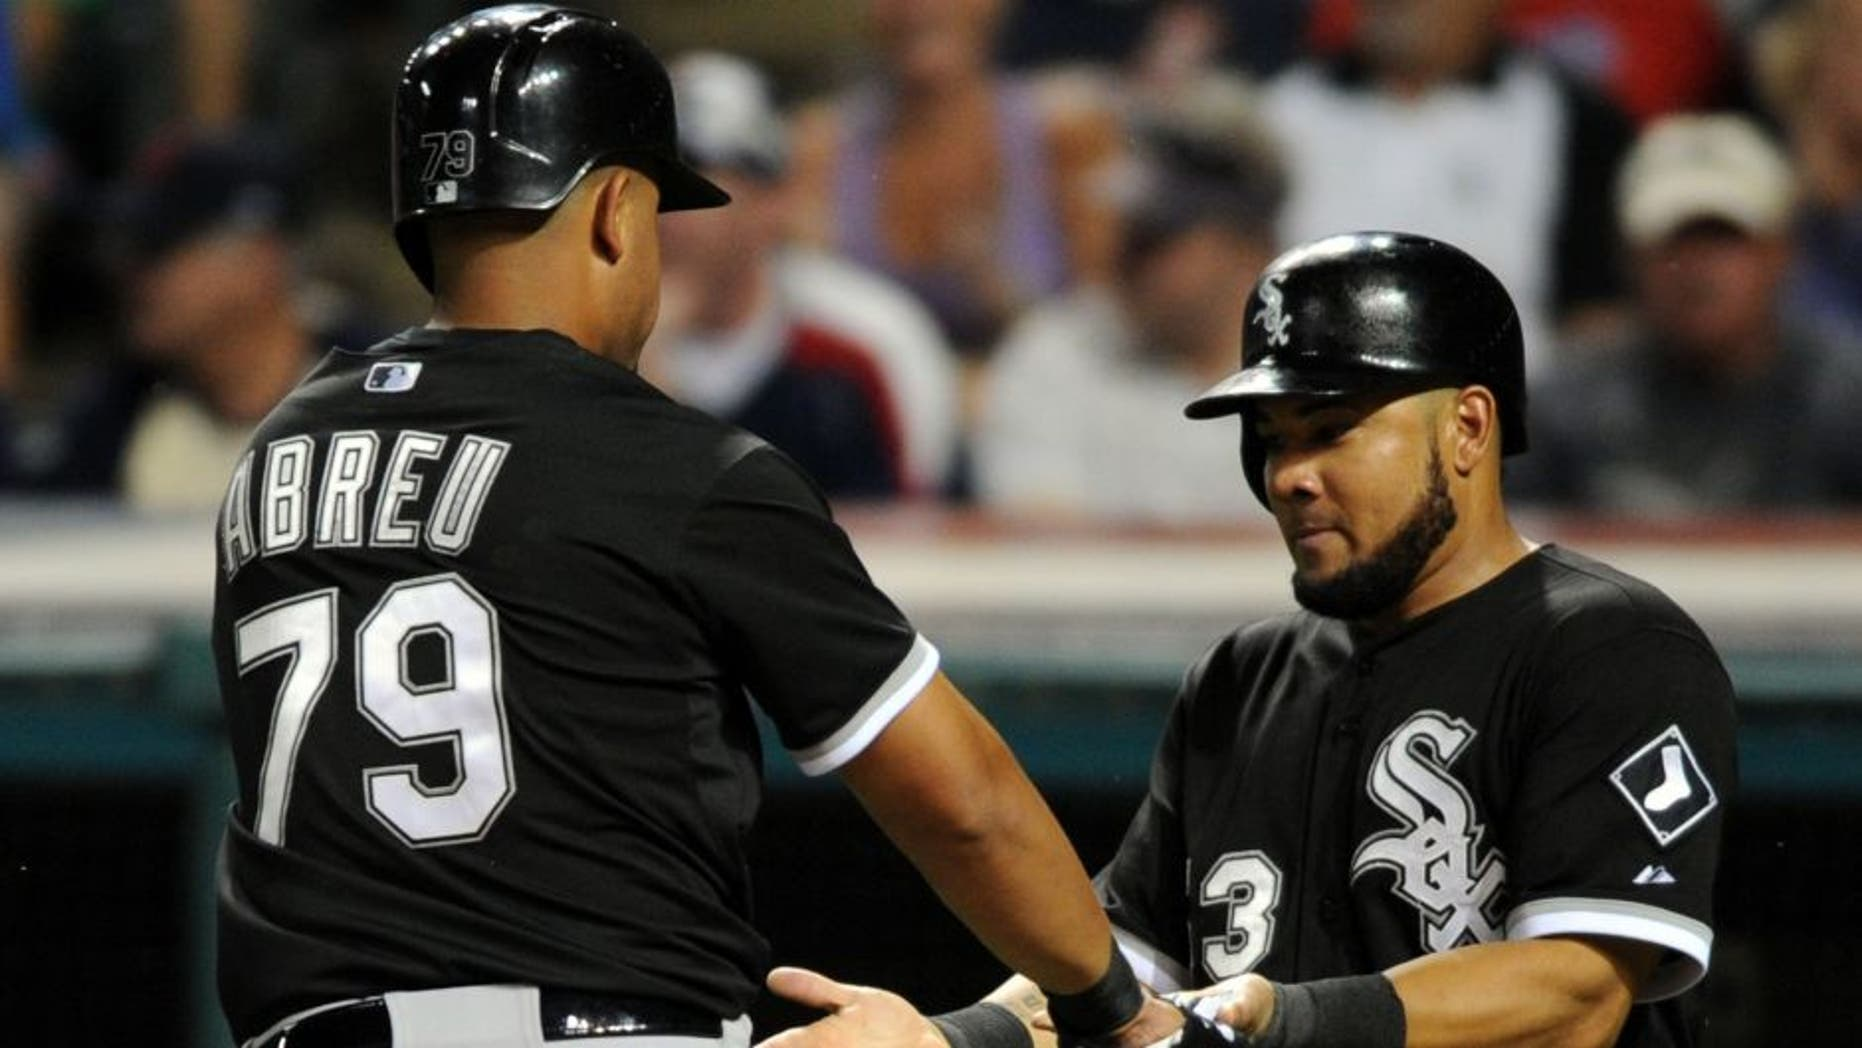 Jul 24, 2015; Cleveland, OH, USA; Chicago White Sox first baseman Jose Abreu (79) and Chicago White Sox left fielder Melky Cabrera (53) celebrate after scoring during the eighth inning against the Cleveland Indians at Progressive Field. The White Sox won 6-0.